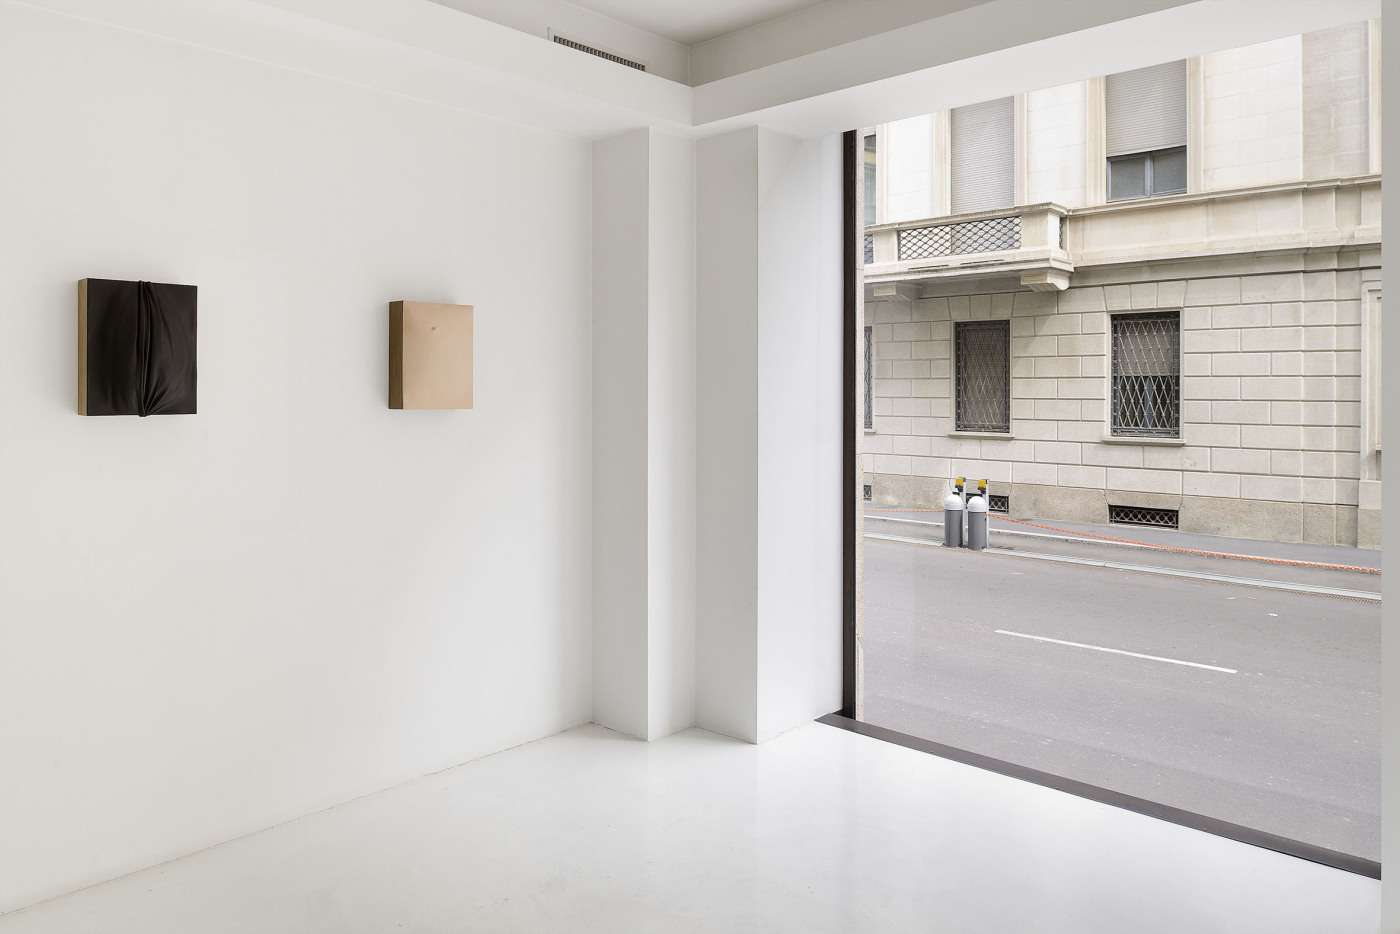 T293 - T293-in-residence at Via Gabba 1, Milano - 1